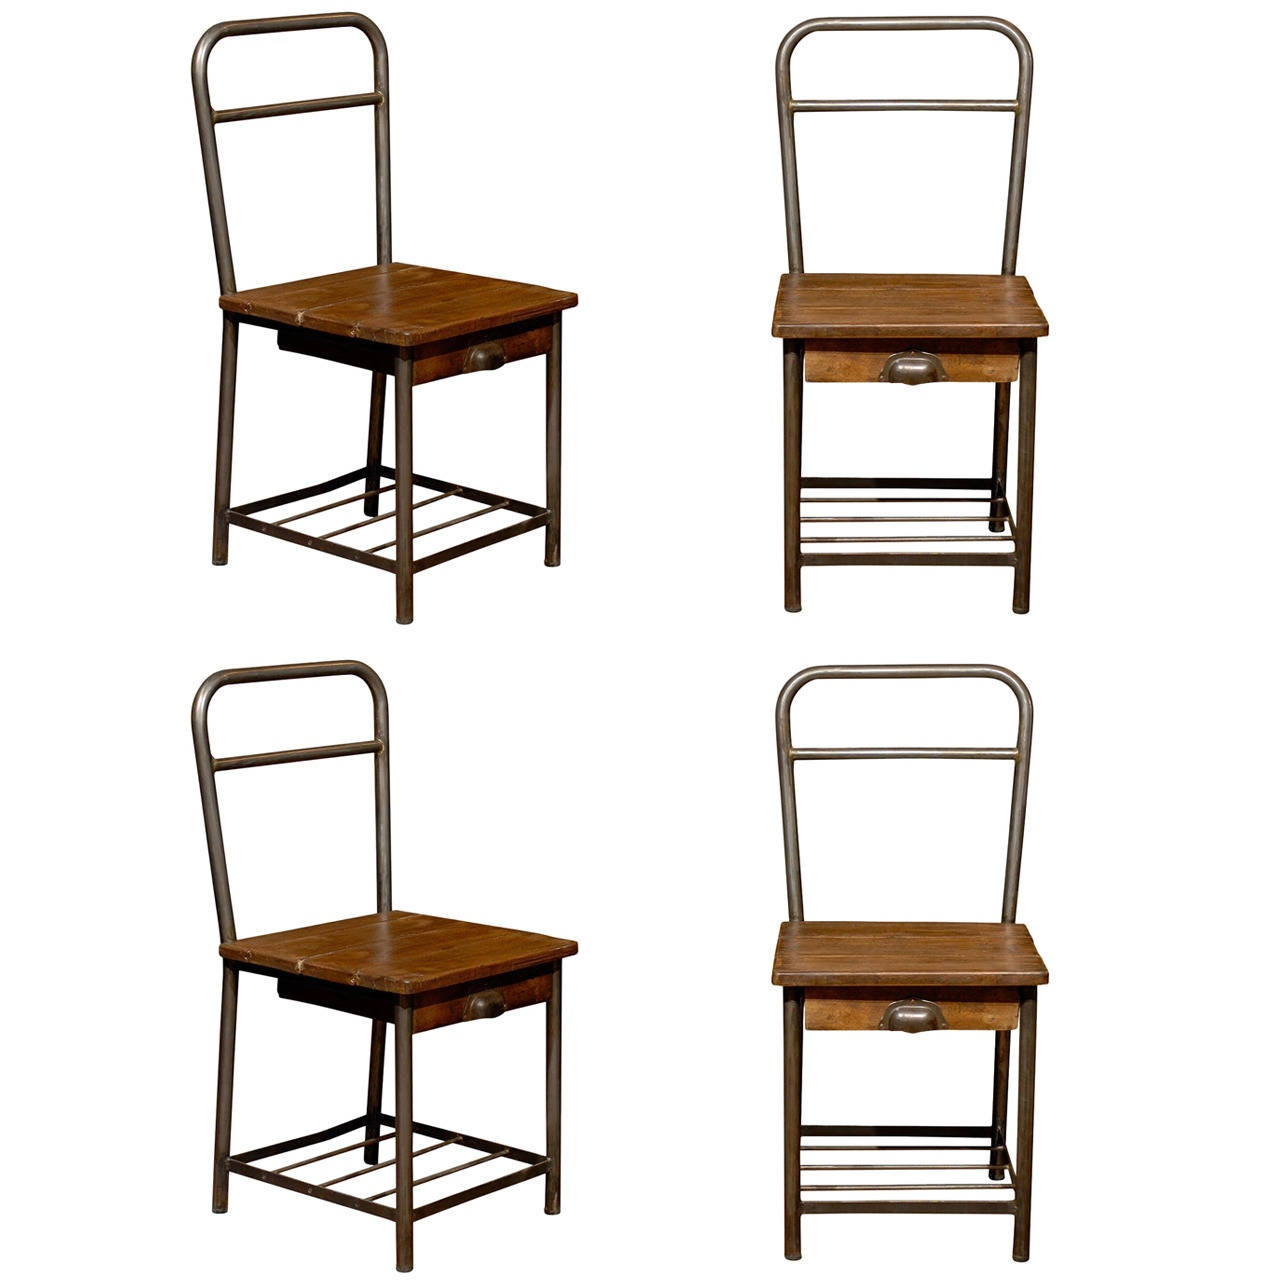 Charmant Pair Of French Industrial Chairs For Sale